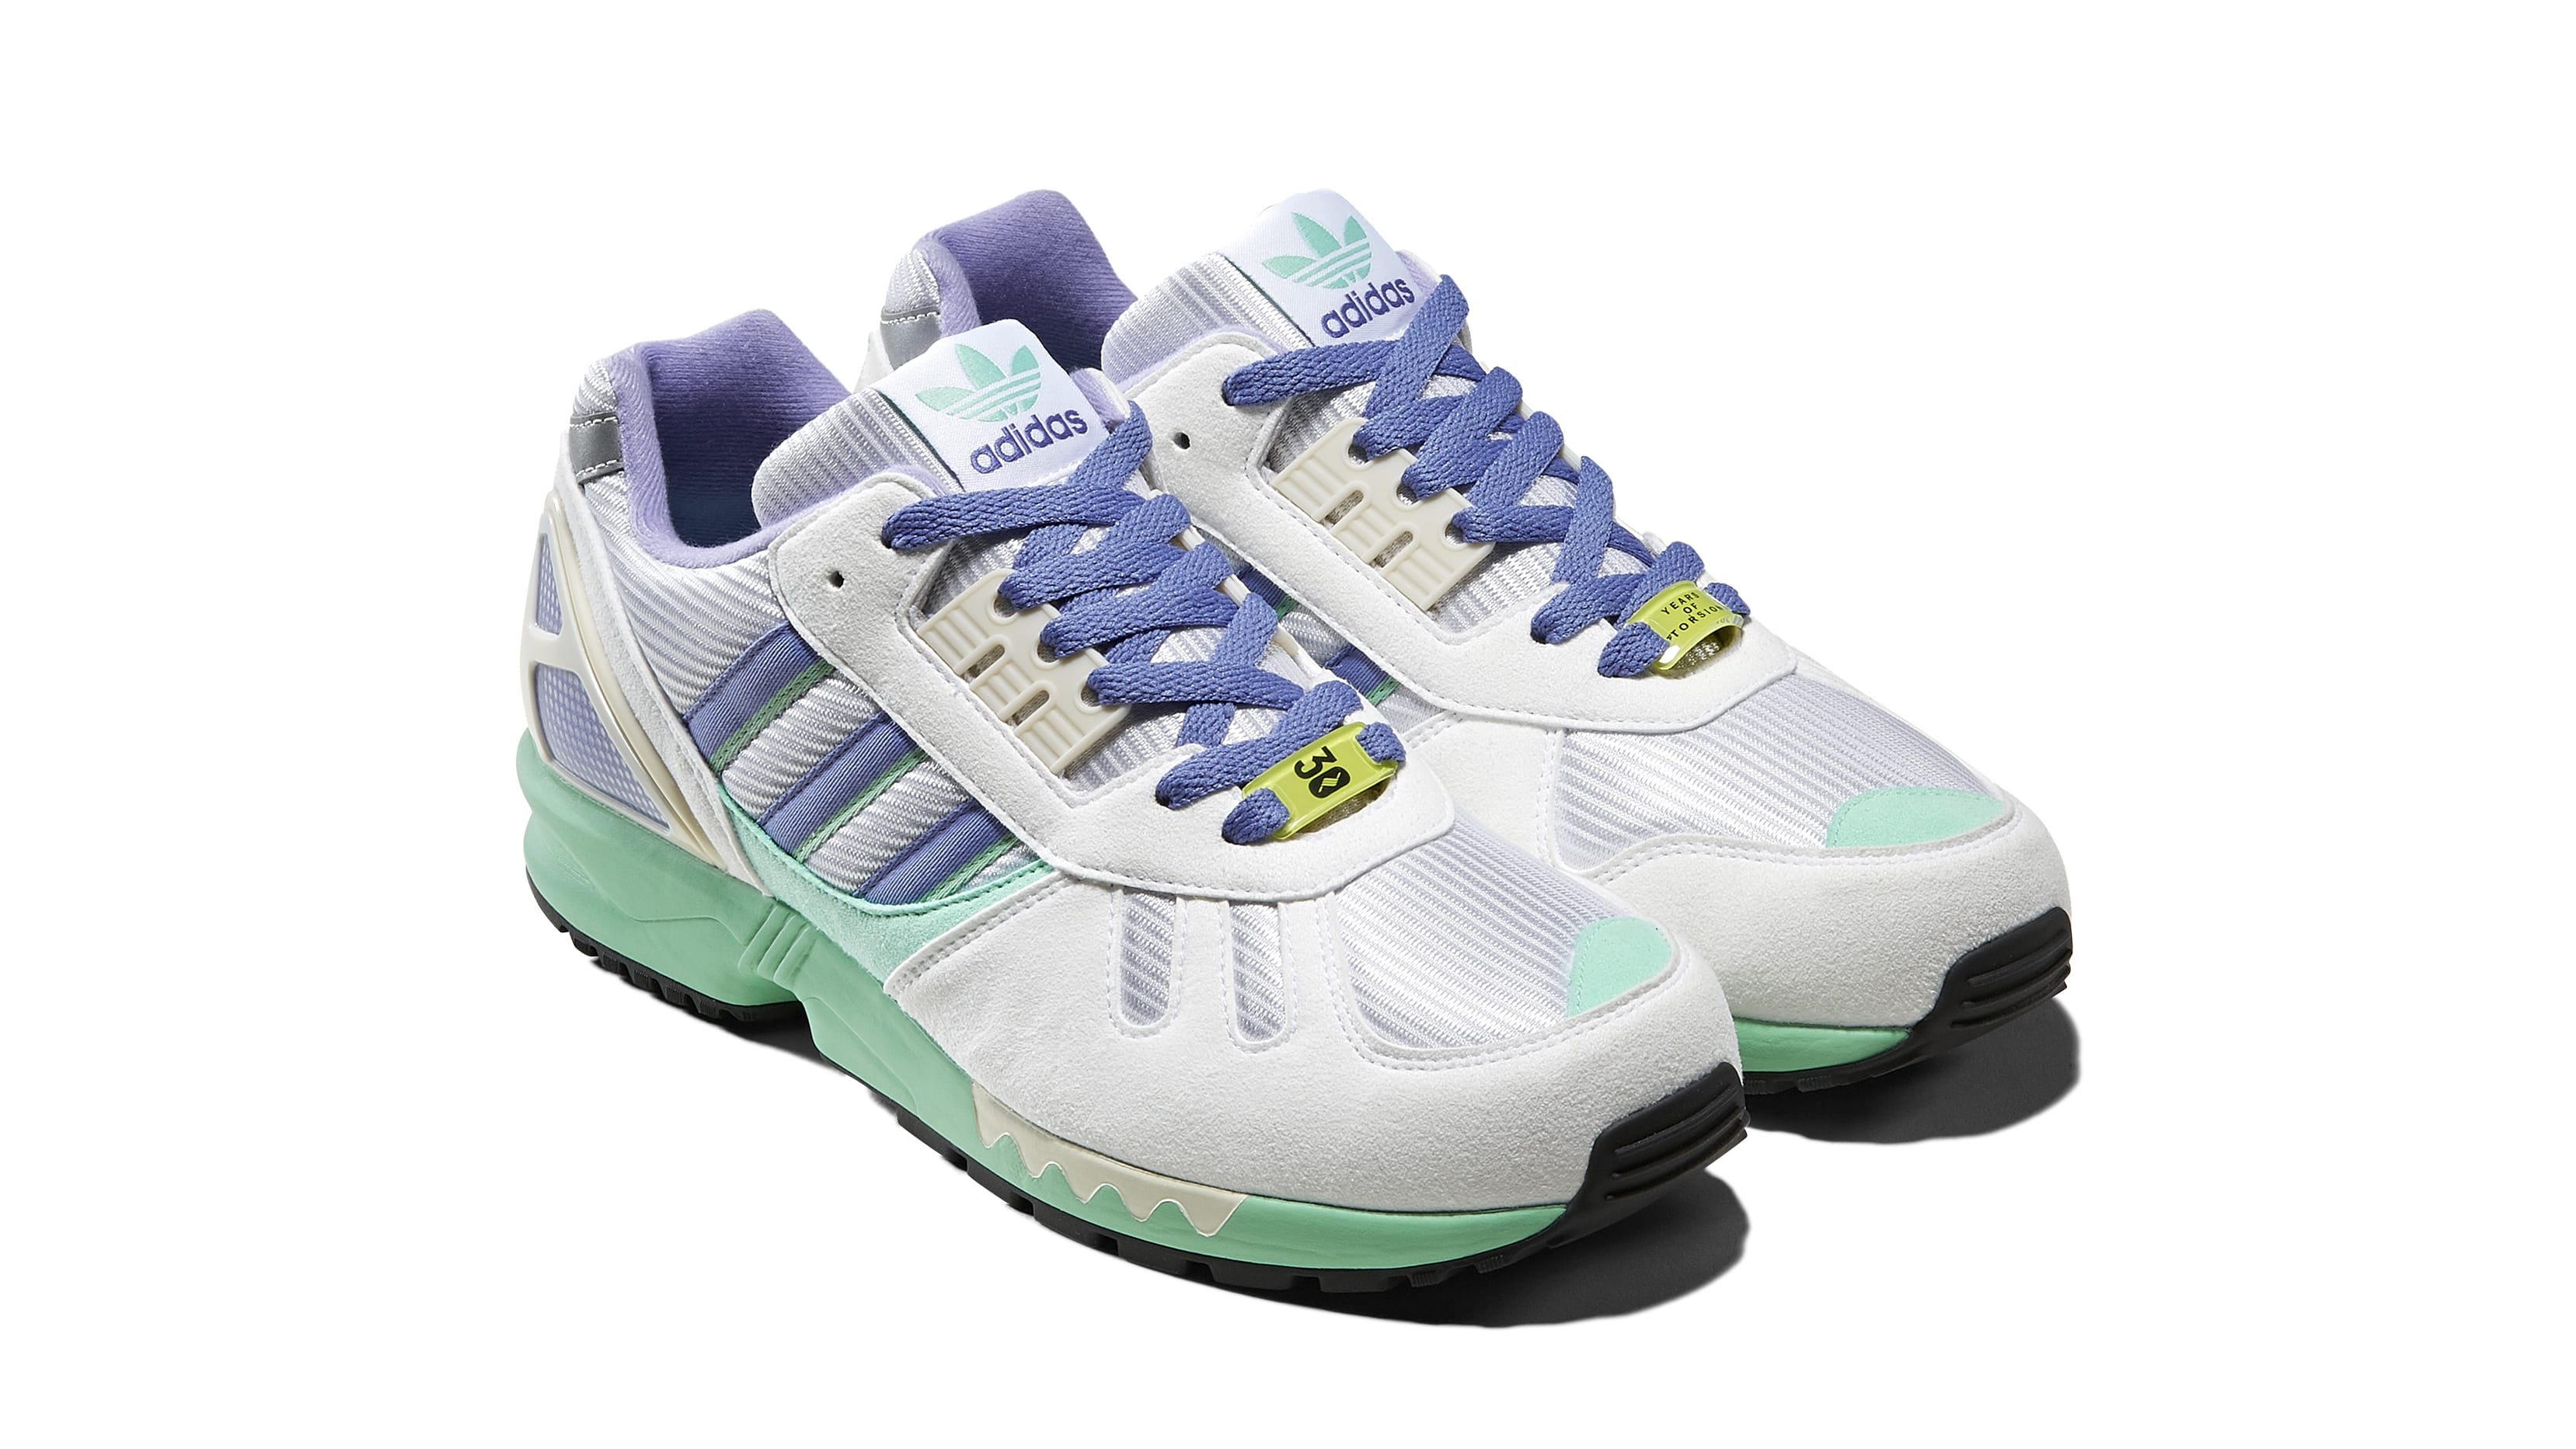 revendeur f71ec a91e0 Adidas ZX 5000 ZX 6000 ZX 7000 ZX 9000 '30 Years of Torsion ...